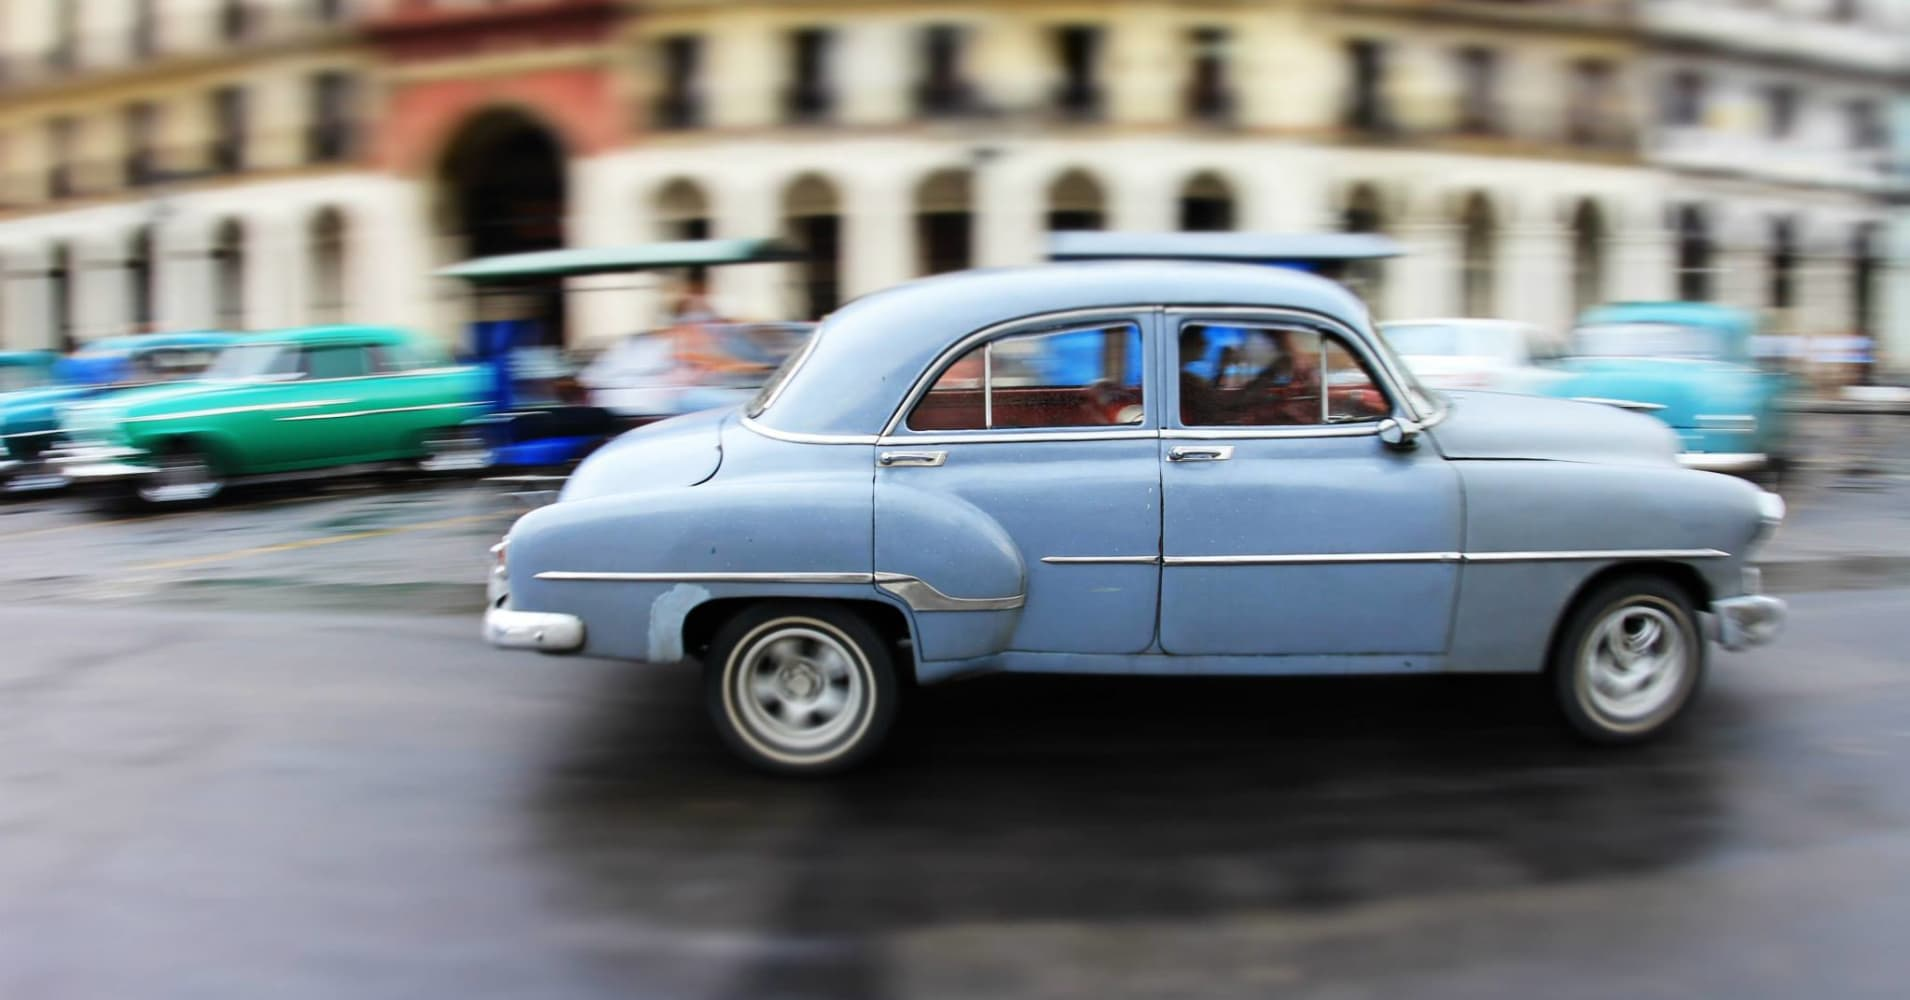 Antique Cuban cars: Why auto collectors are holding off